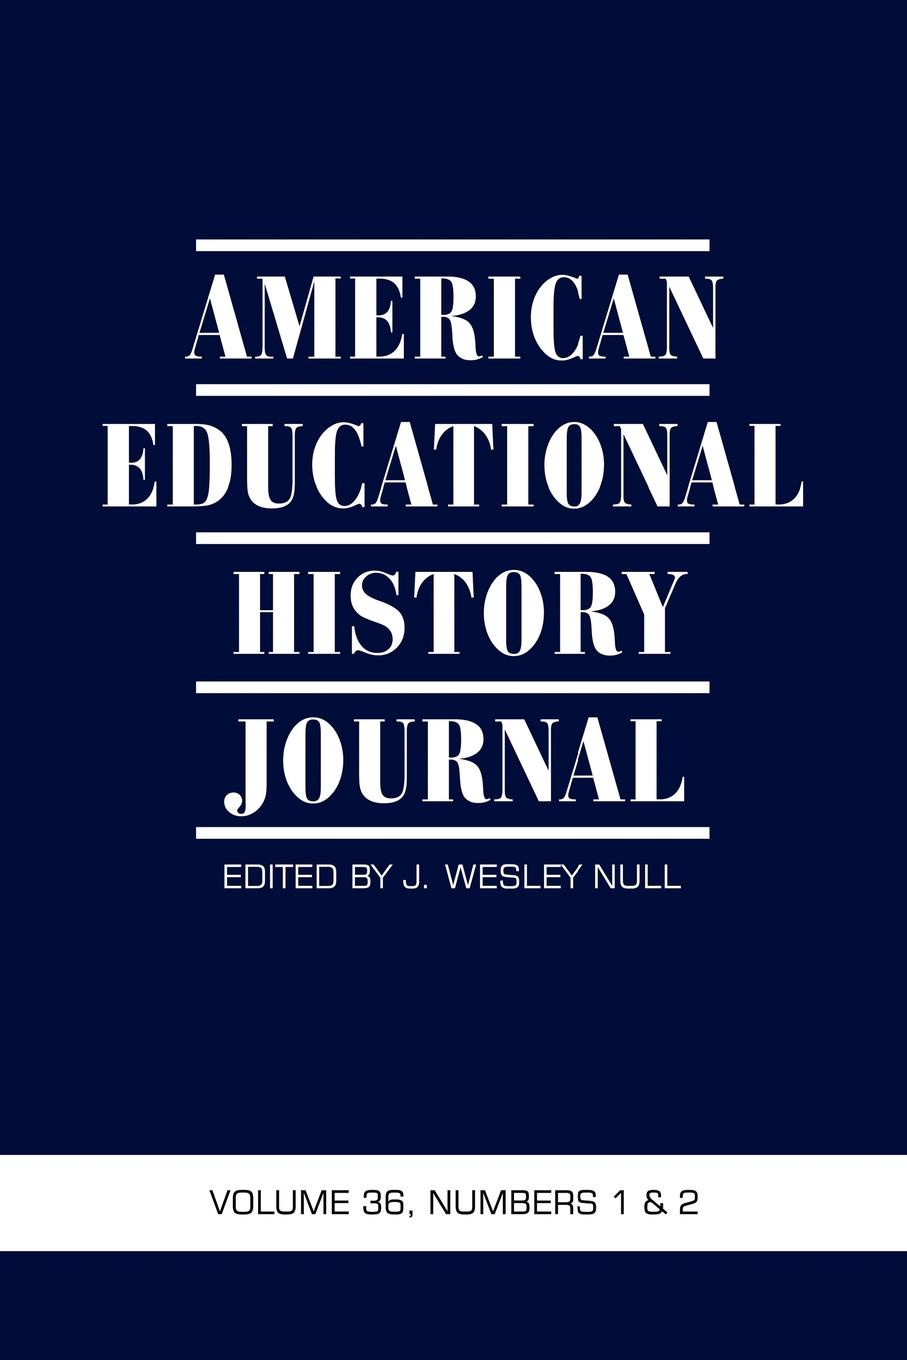 American Educational History Journal VOLUME 36, NUMBER 1 . 2 2009 (PB) the sojo journal educational foundations and social justice education volume 1 number 1 2015